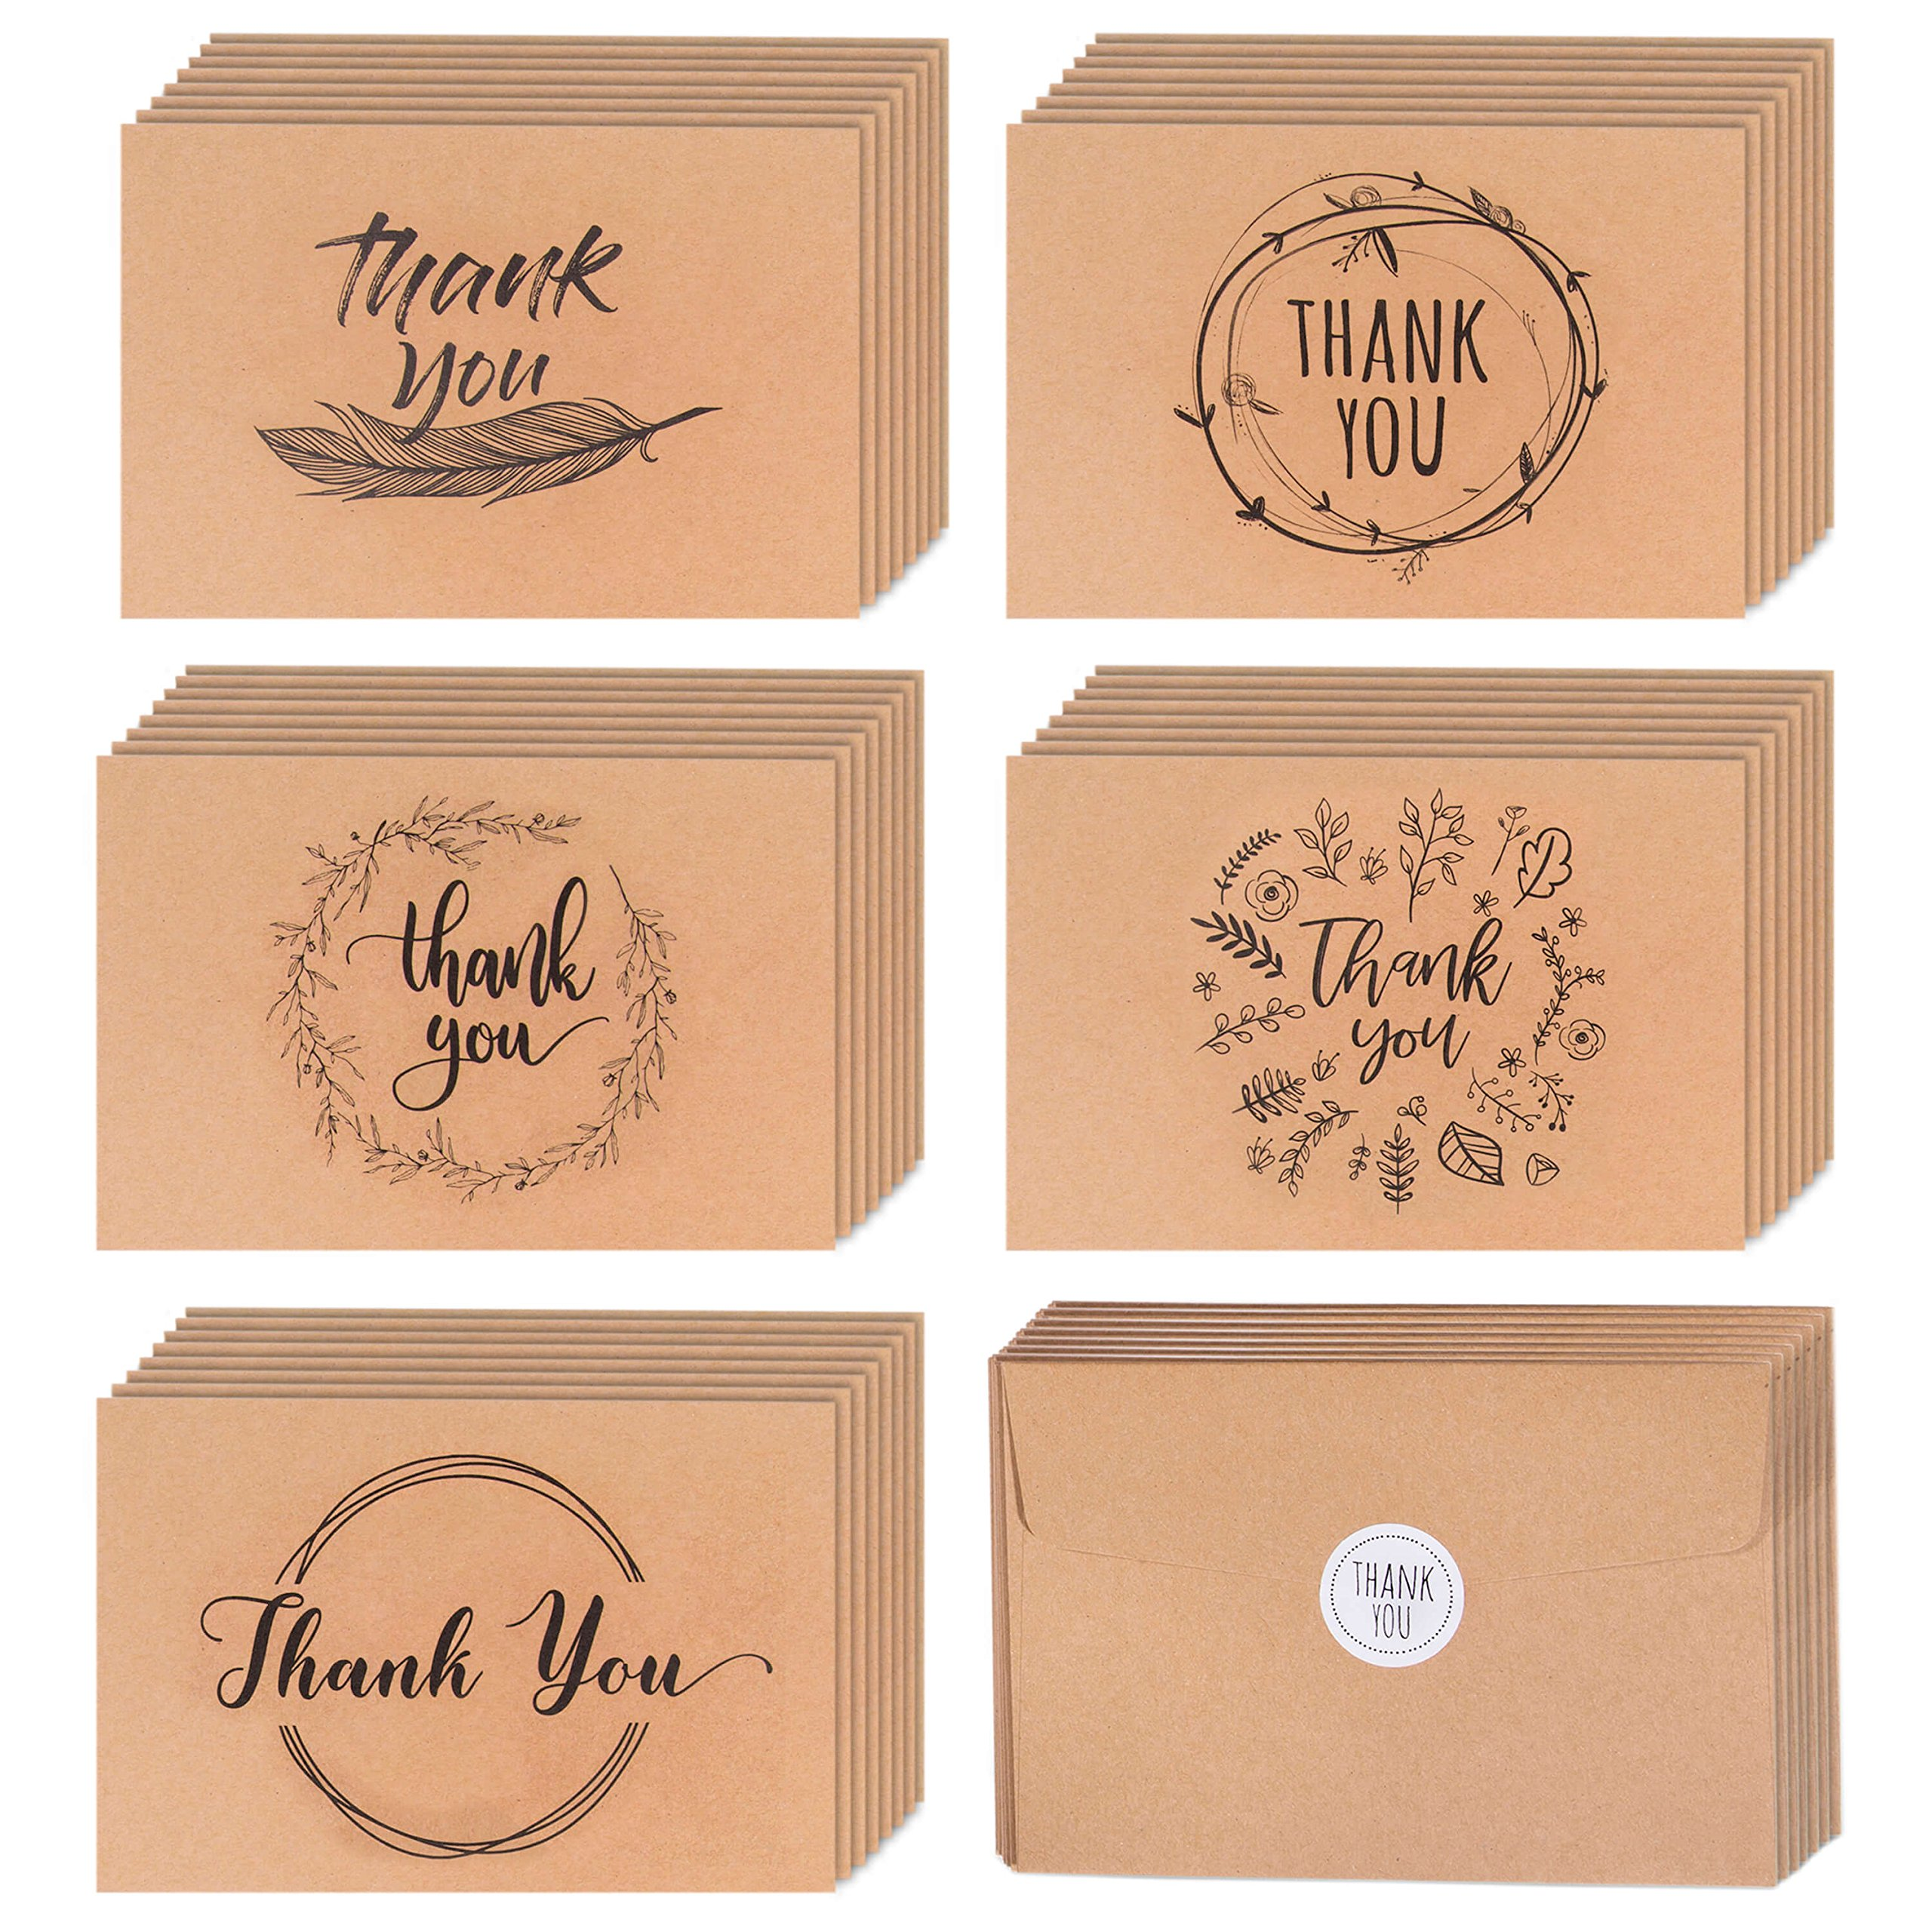 40 Kraft Rustic and Vintage Thank You Cards | Bulk Box Set w/Envelopes & Stickers | Large Brown 4 x 6'' Greeting Cards Blank Inside | Perfect For Wedding, Graduation, Men & Women Sympathy